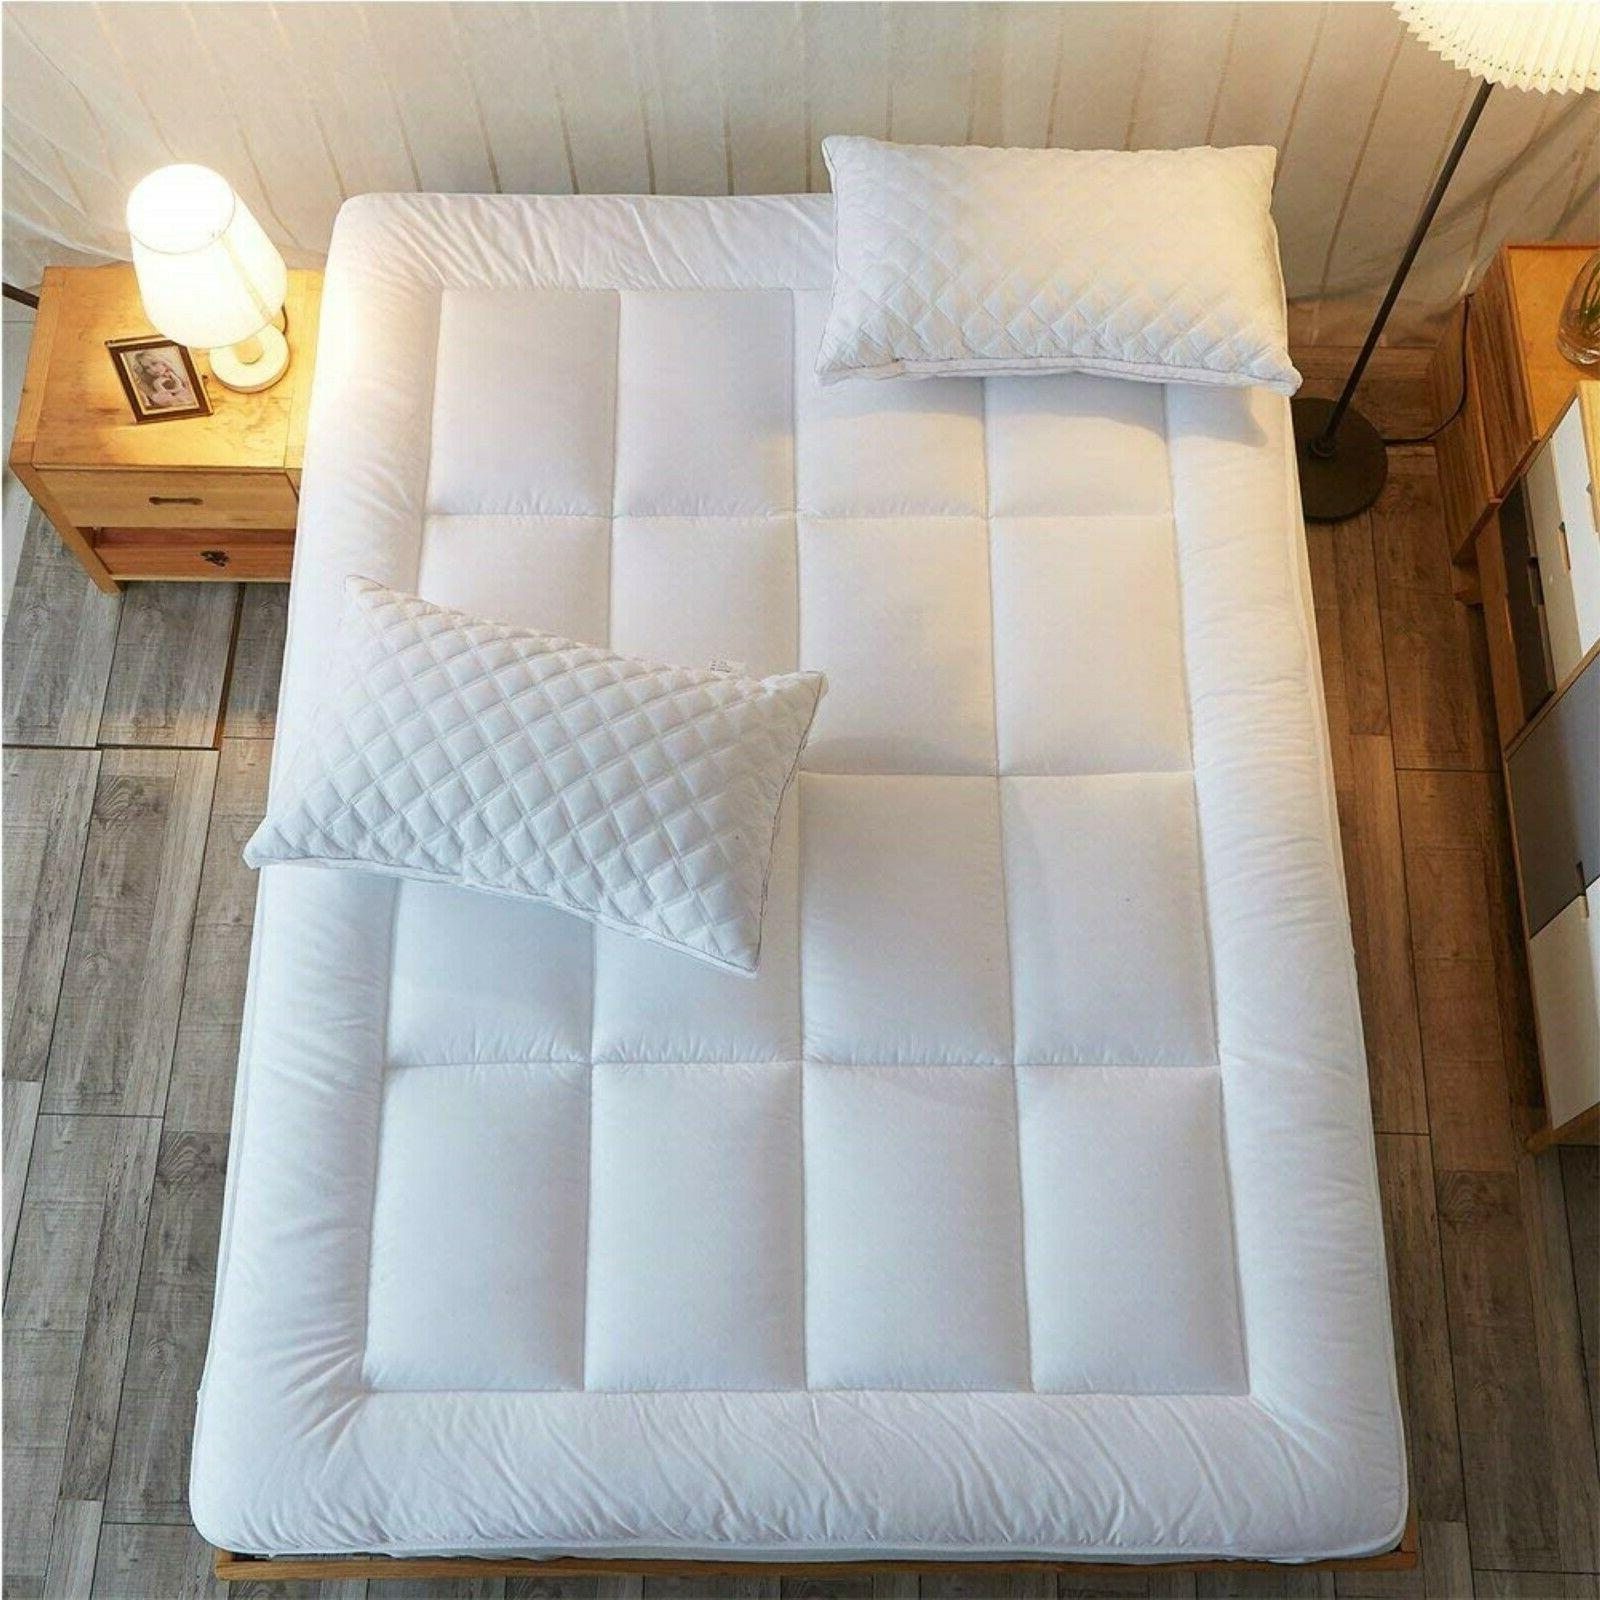 Mattress Pad Cover Memory Foam Topper Pillow Cooling Top Thi